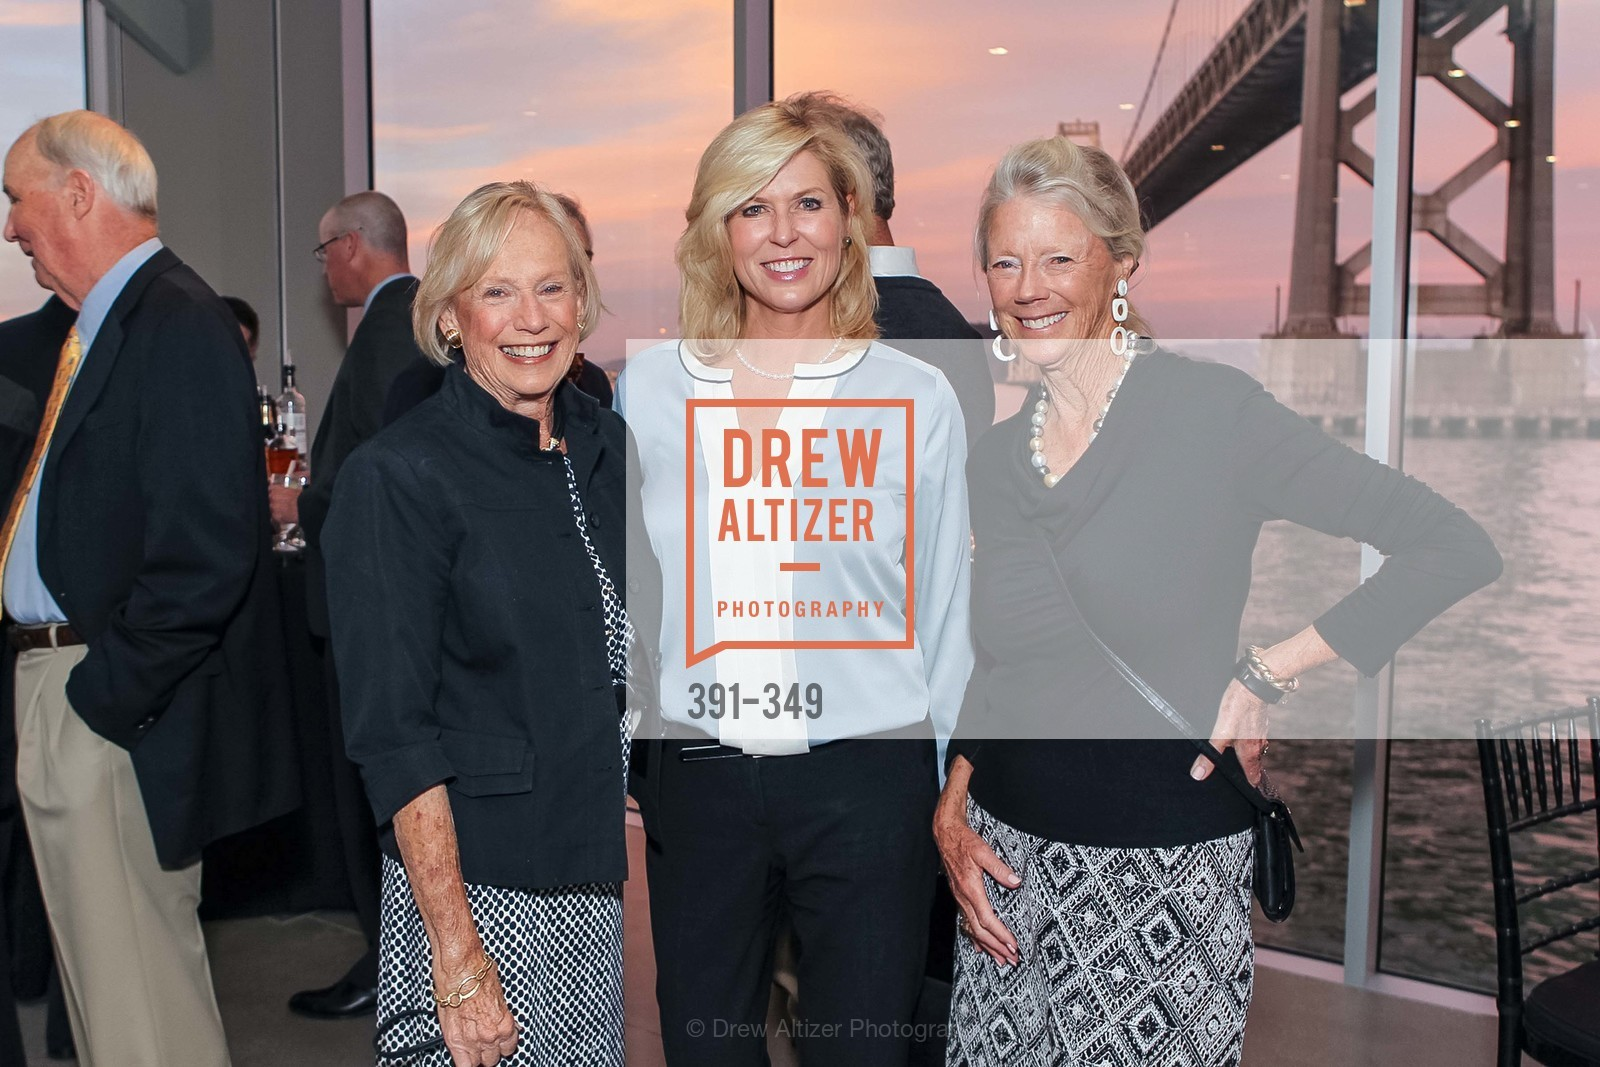 Donna Derr, Elizabeth Griggs, Daphne Bertero, Cocktails on the Pier- A BASIC Fund Thank You, Pier 24 Photography. 24 Pier The Embarcadero, October 8th, 2015,Drew Altizer, Drew Altizer Photography, full-service agency, private events, San Francisco photographer, photographer california